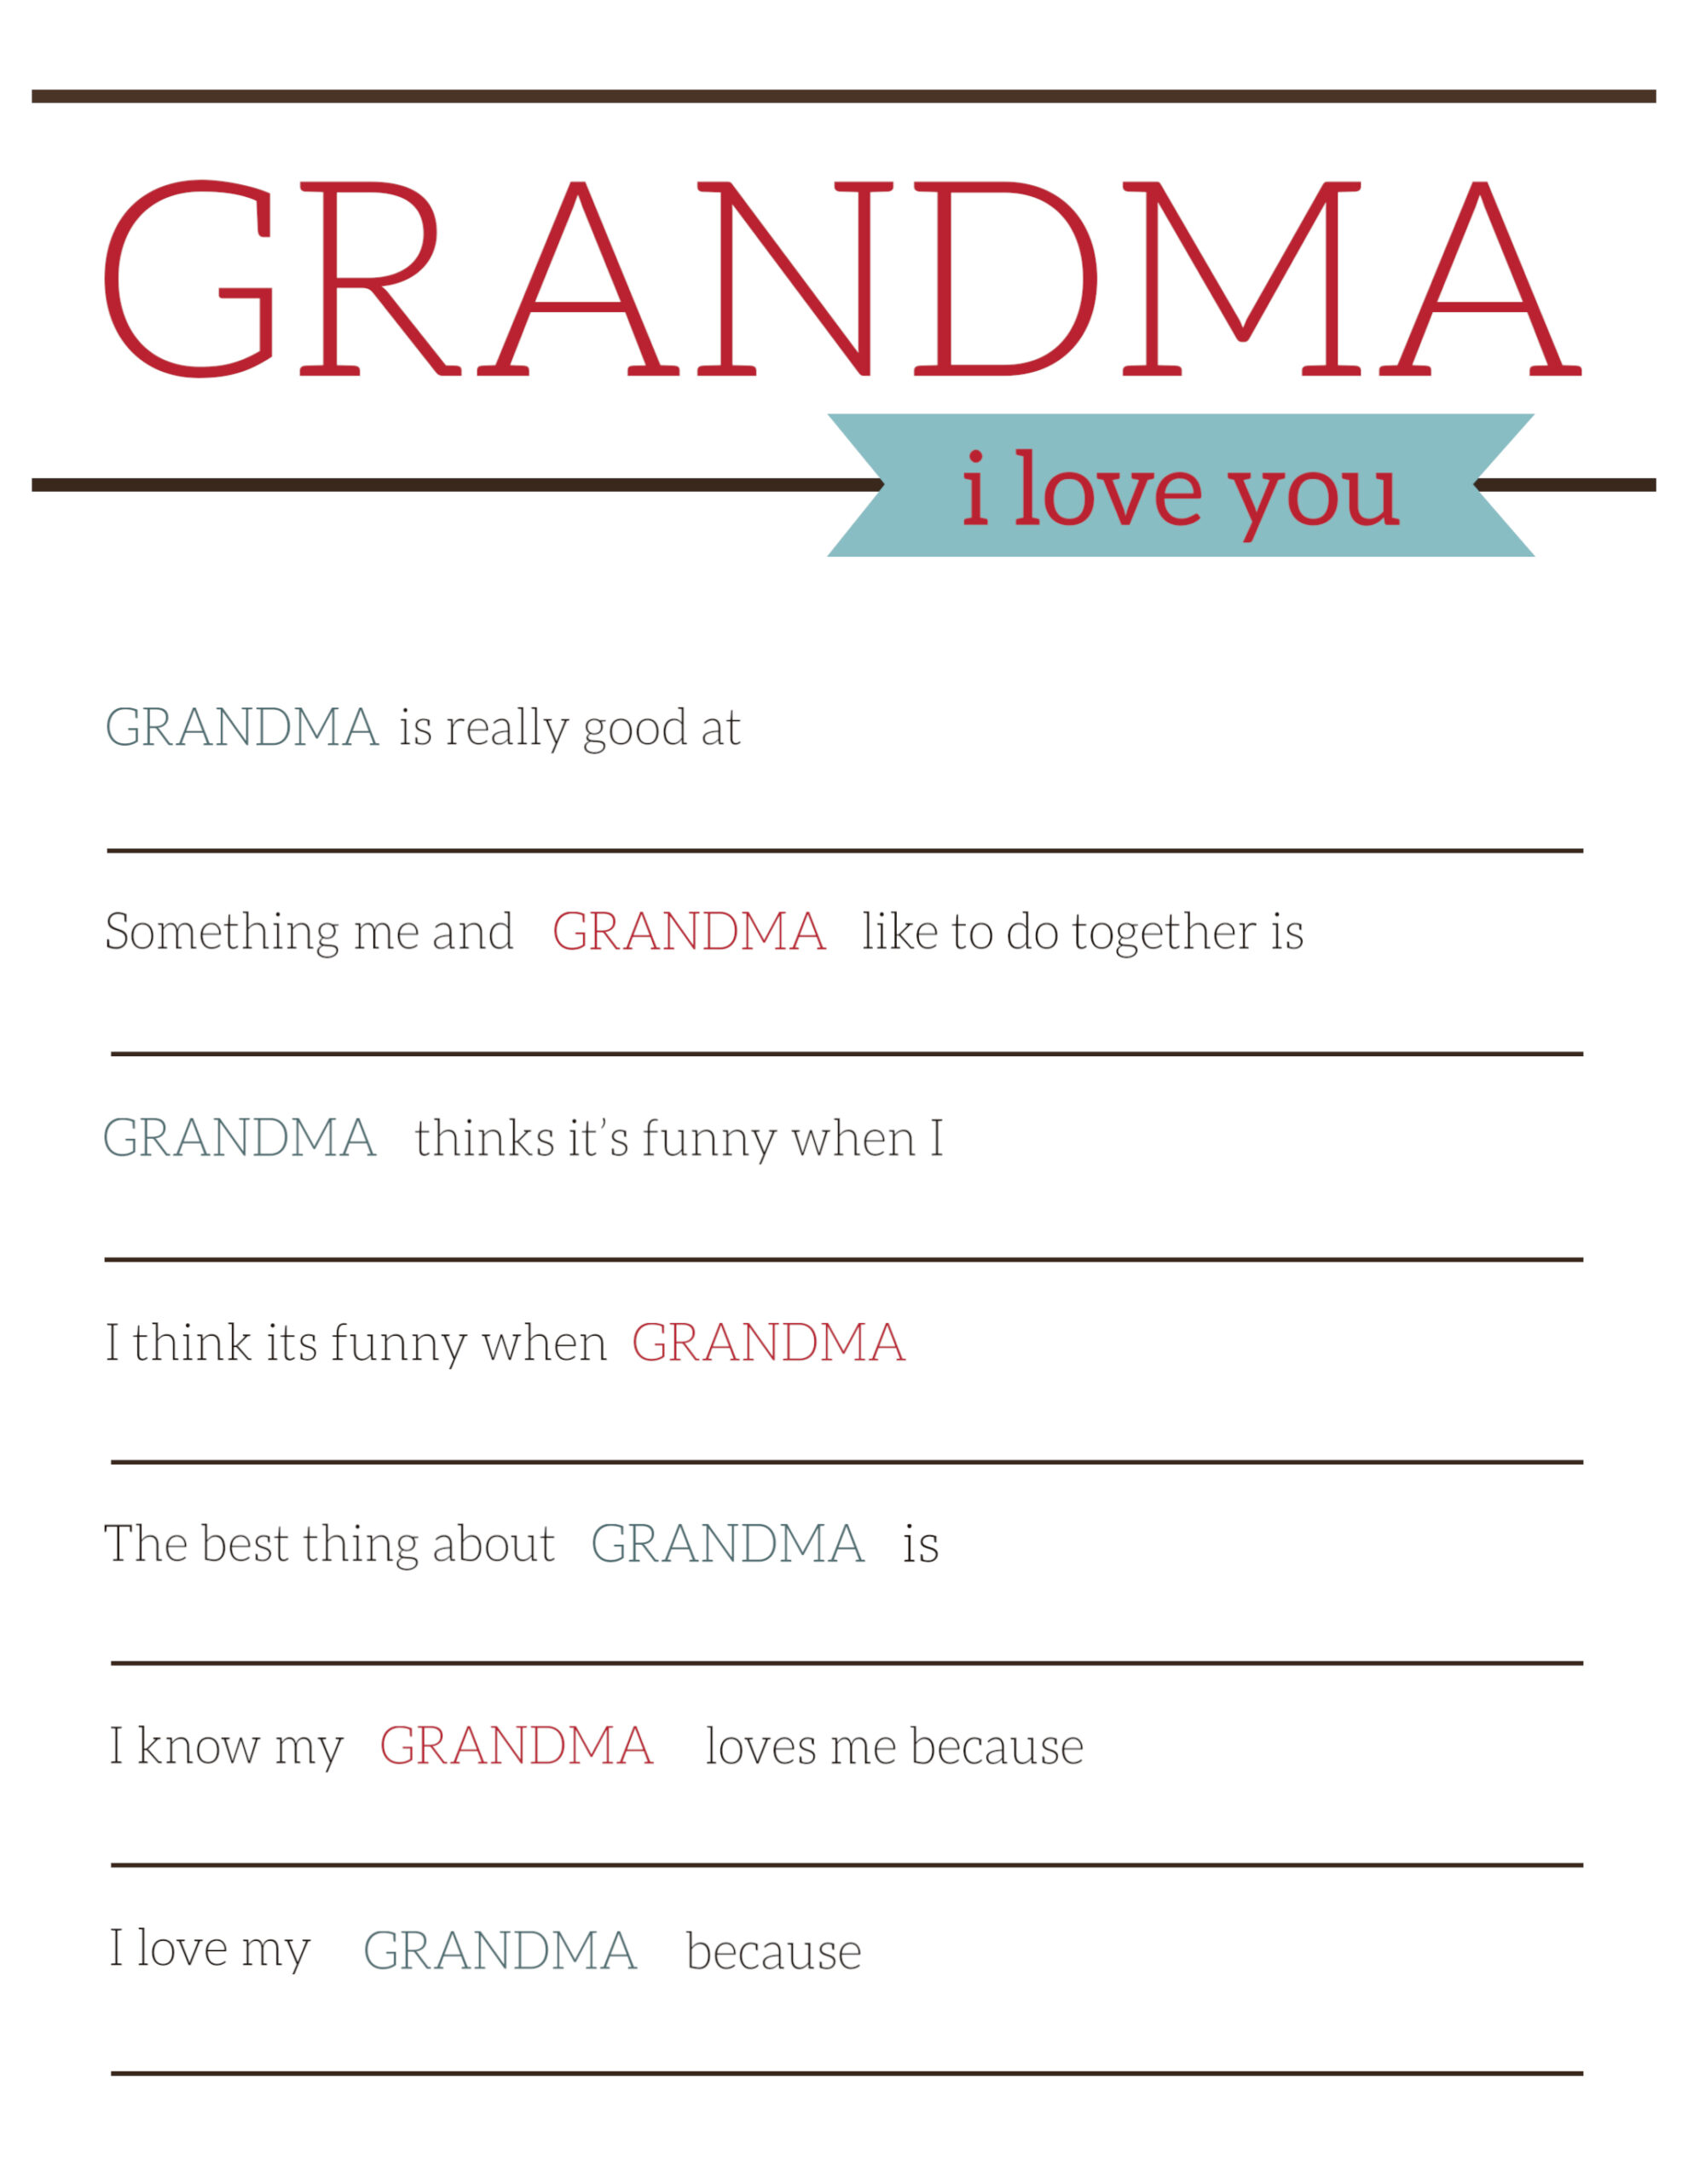 Grandma Gifts for Mother's Day - Printable Card - Paper ...